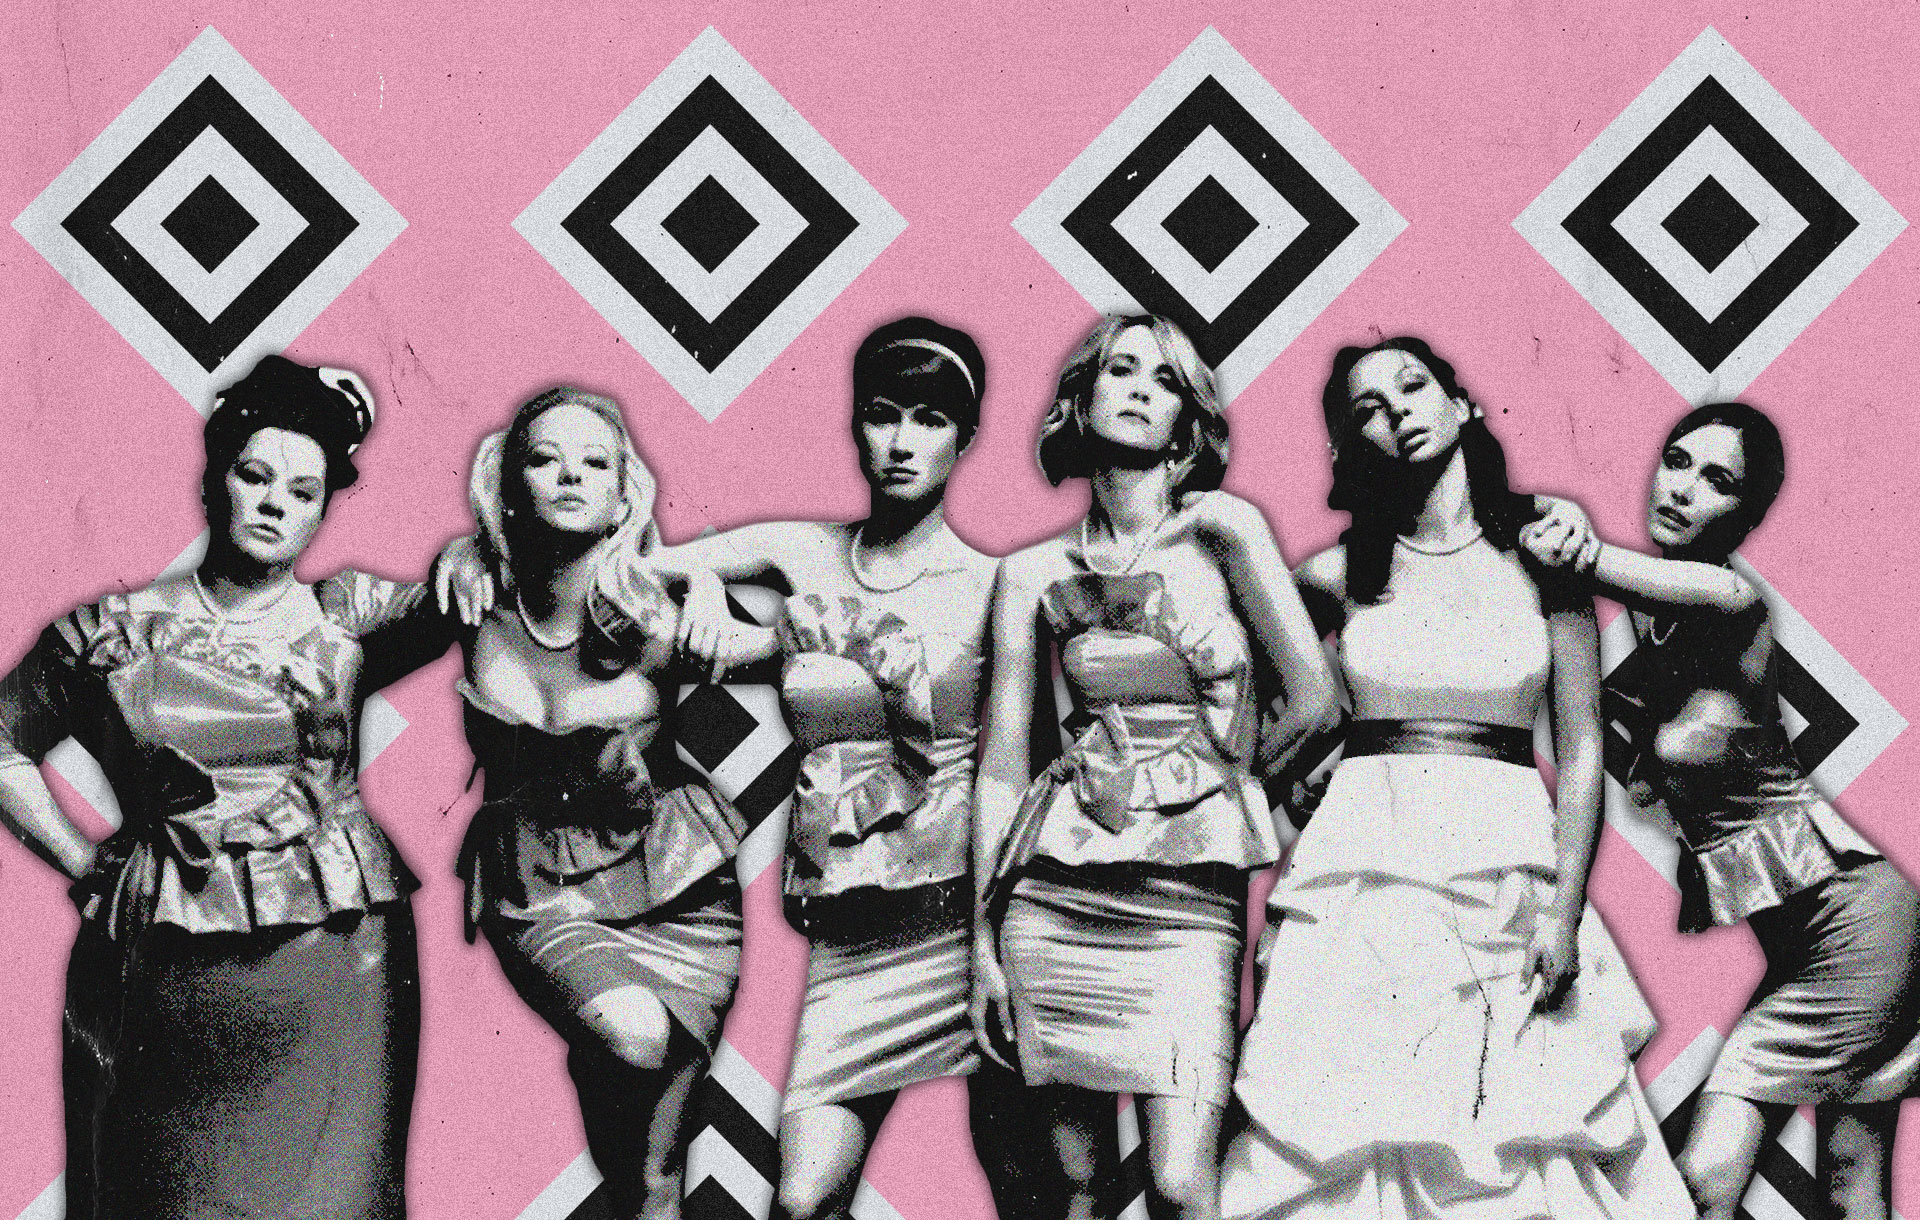 10 Years of 'Bridesmaids': A Comedy of Messiness | Features | LIVING LIFE FEARLESS